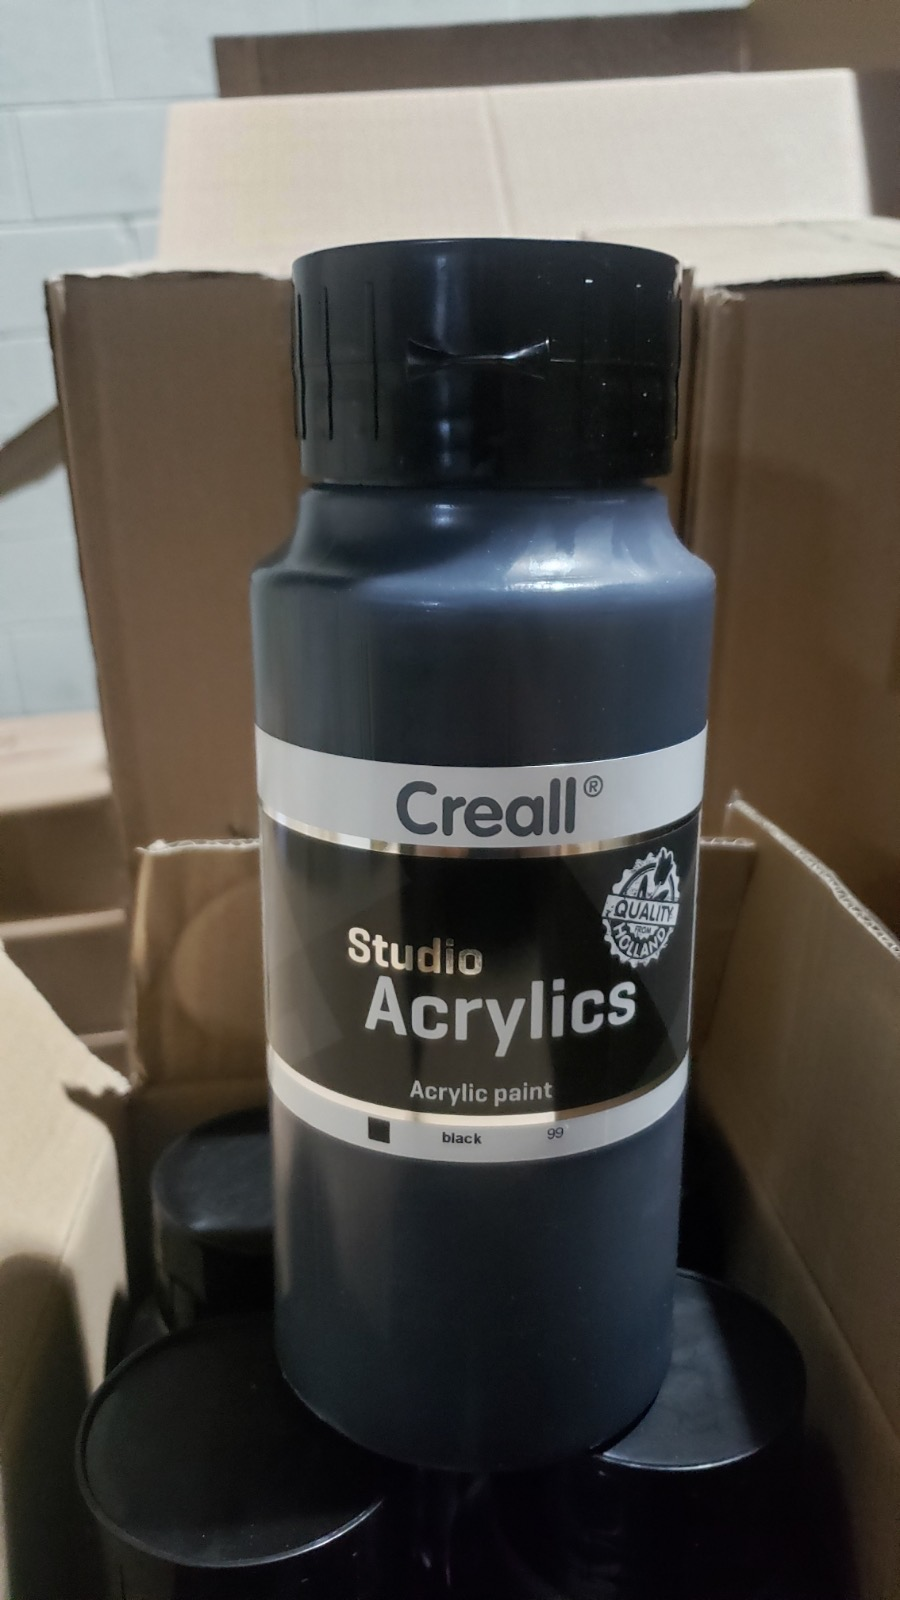 Creall Acrylic Paint for Art Projects and Hobbies - New Case Packed 6,144 Units